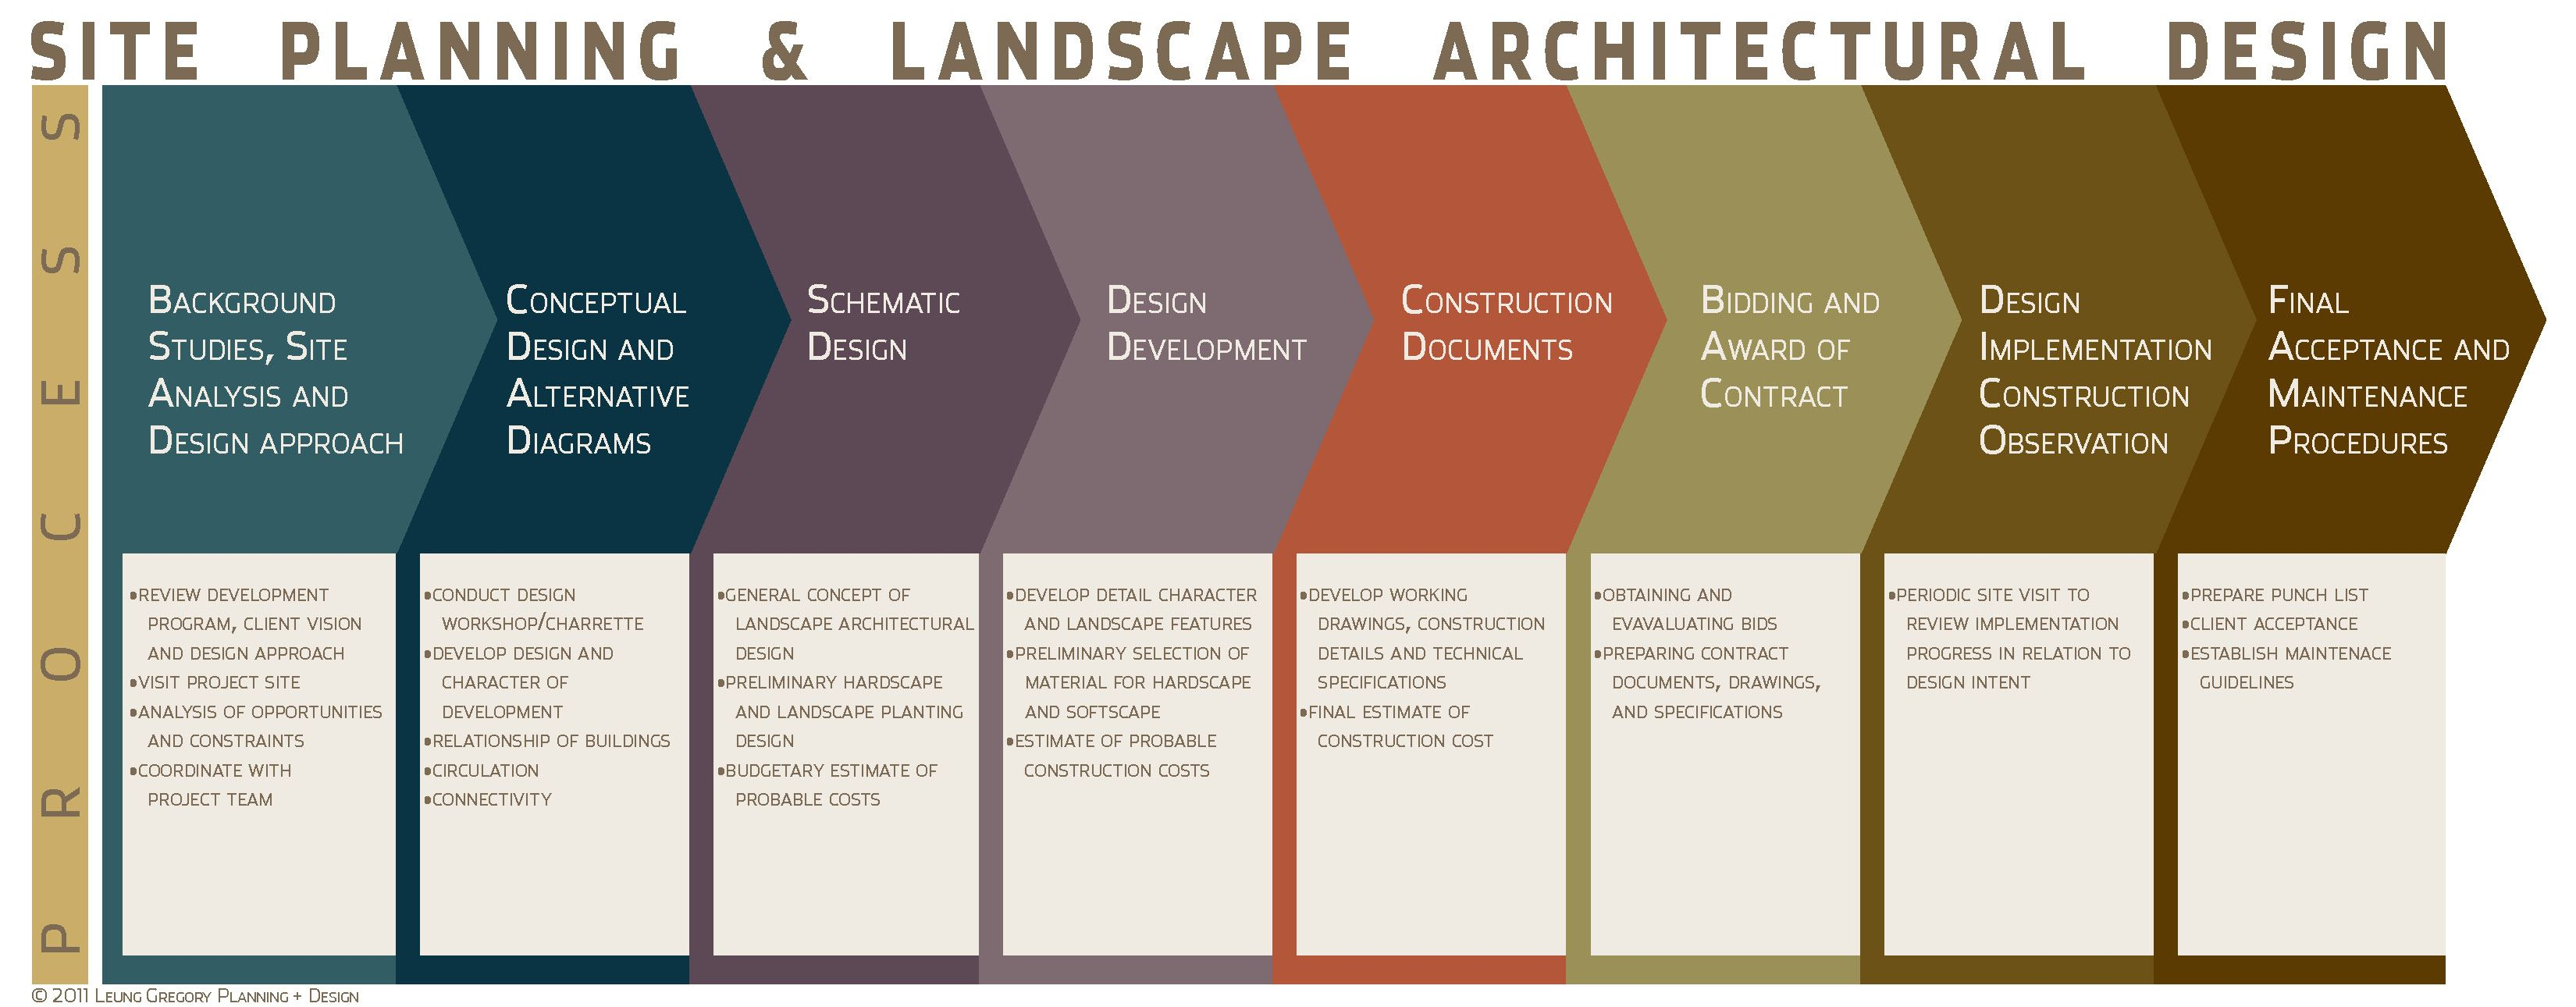 Site Planning And Landscape Architecture Process Jpg 3300 1290